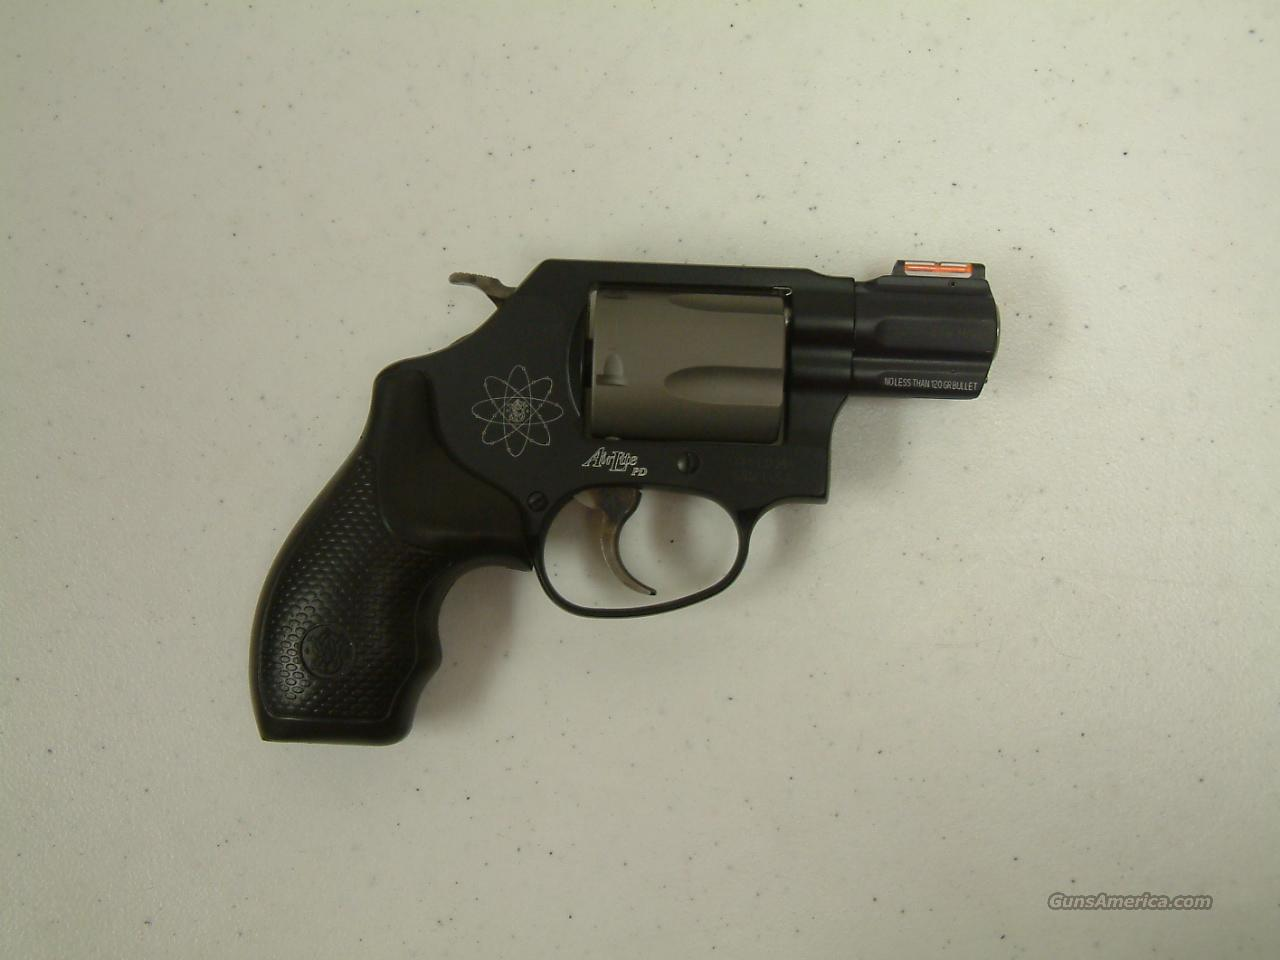 Smith&Wesson 360 PD  Guns > Pistols > Smith & Wesson Revolvers > Pocket Pistols